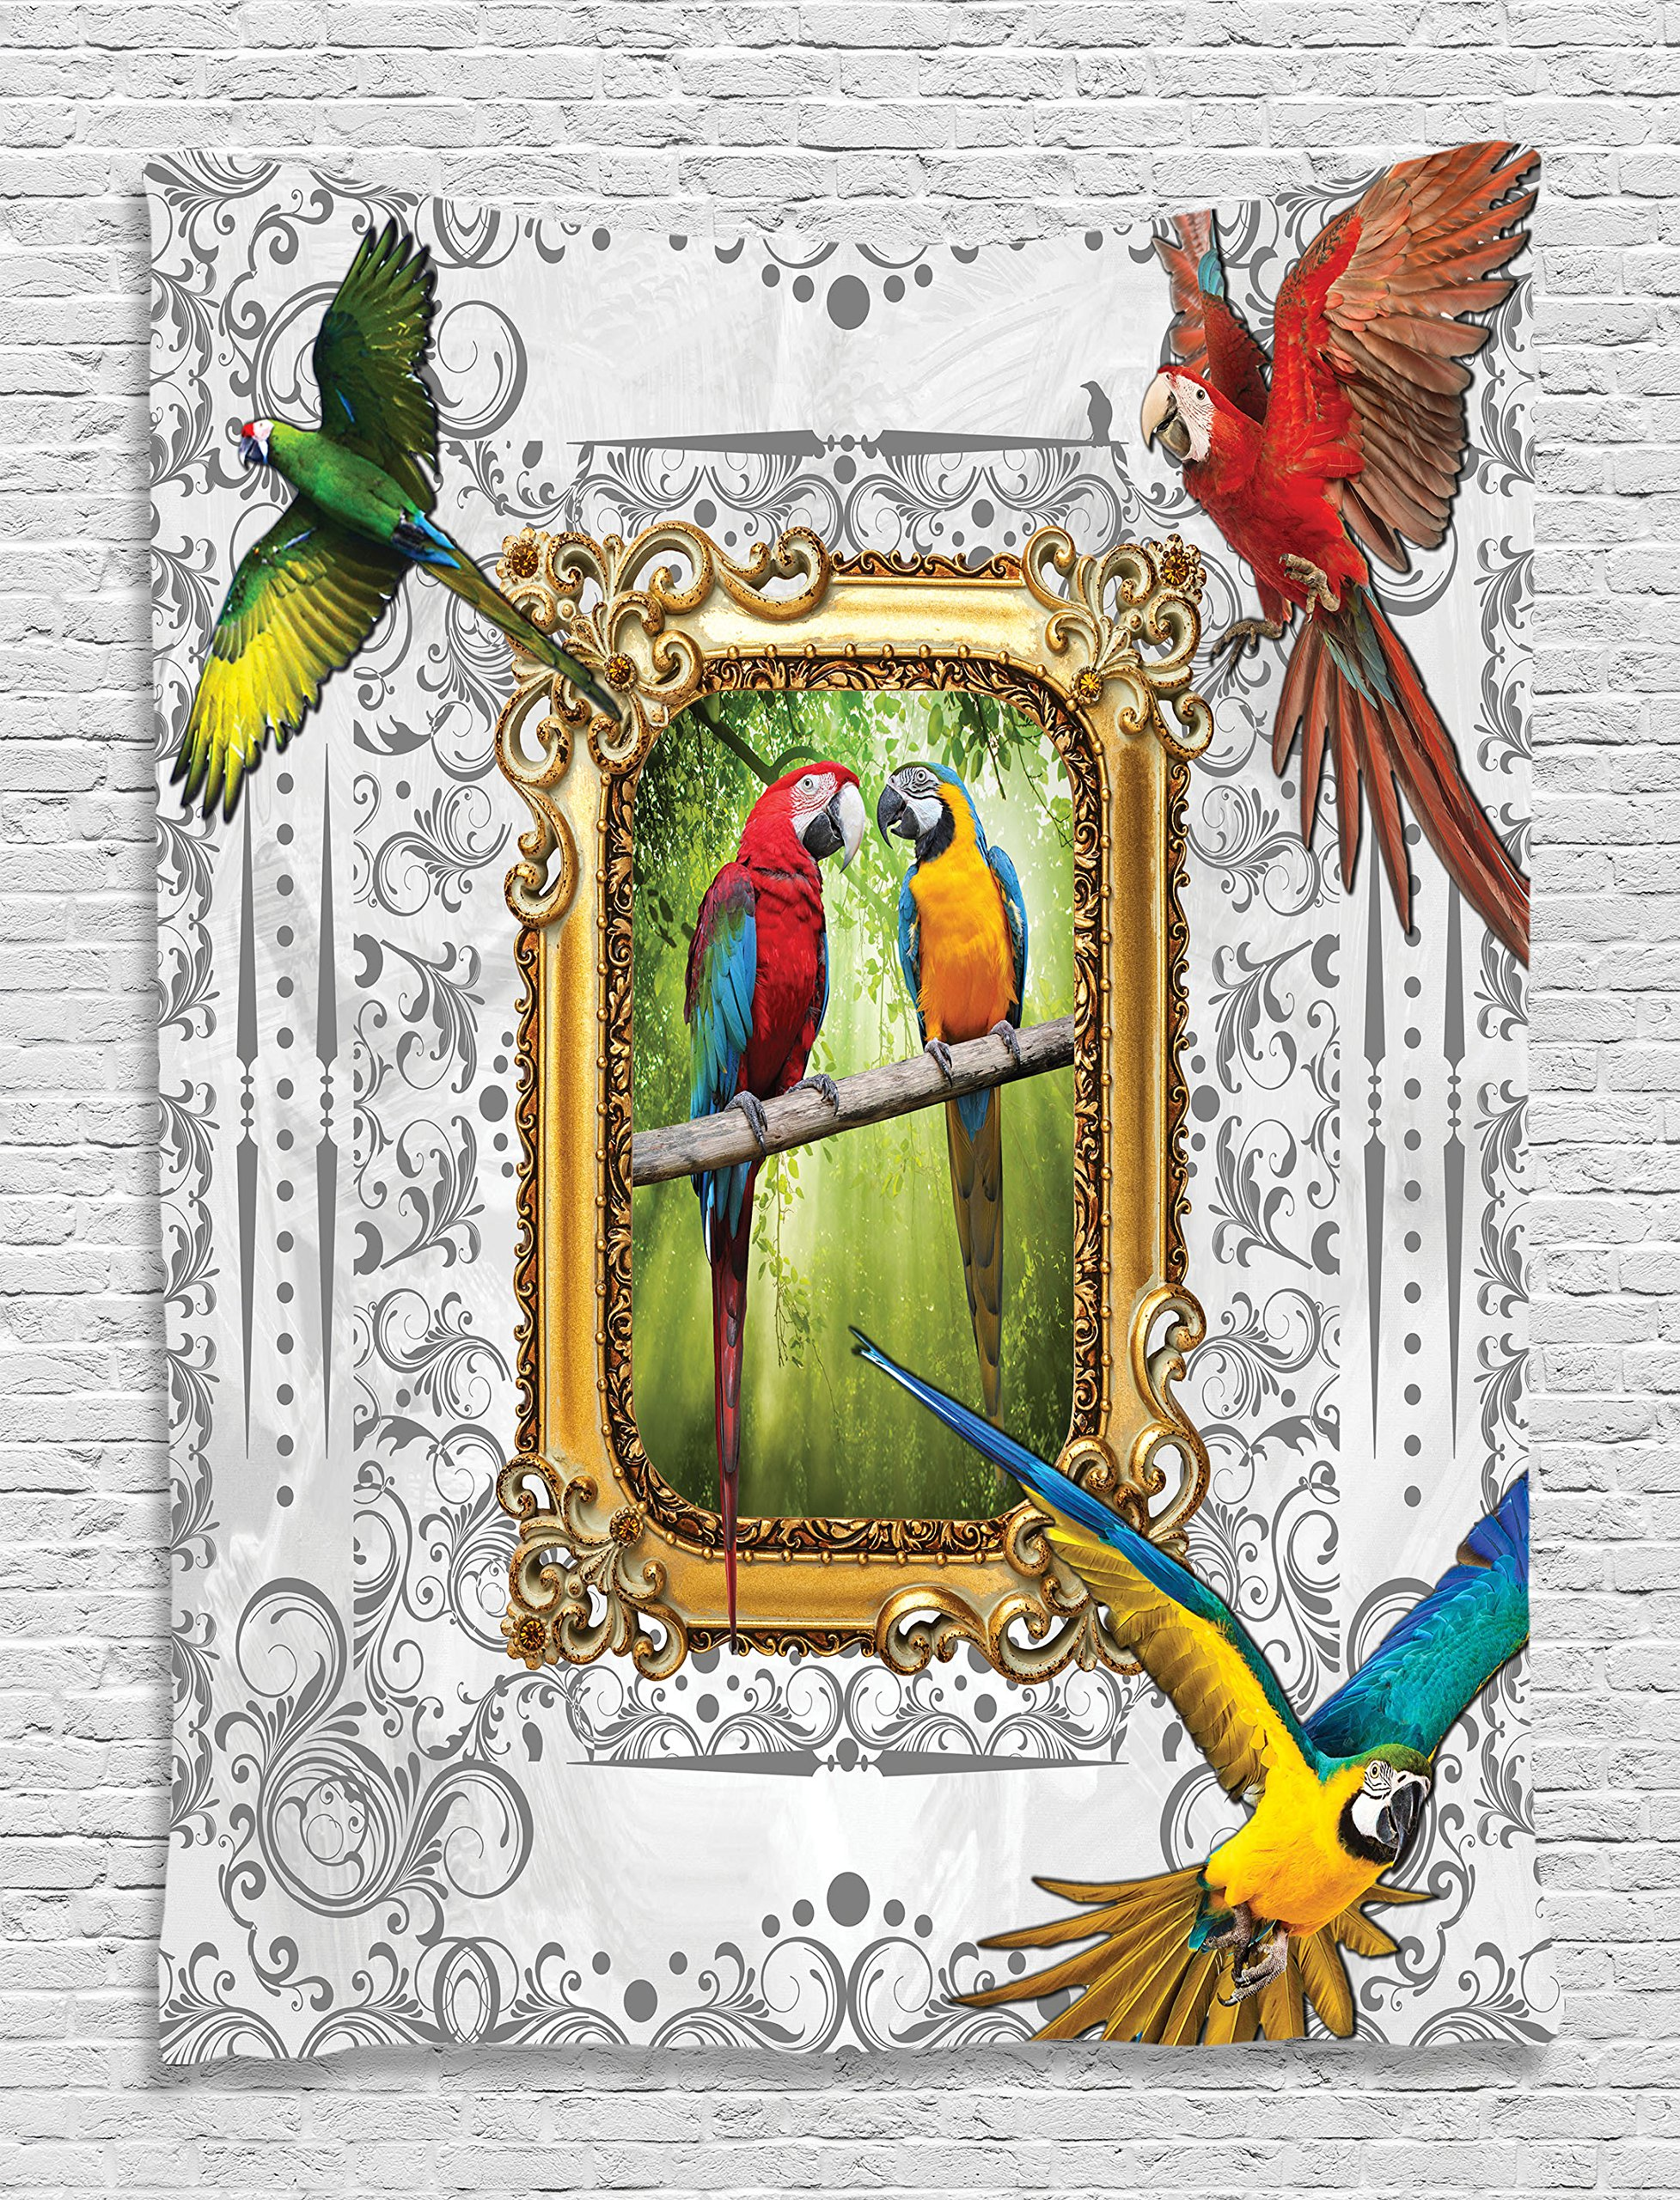 Magical Birds Dream Parrots Imaginary Art Ceremony Myth Wild Jungles Simurgs World of Animals Digital Printed Tapestry Wall Hanging Living Room Bedroom Decor, Red Green Turquoise Yellow White